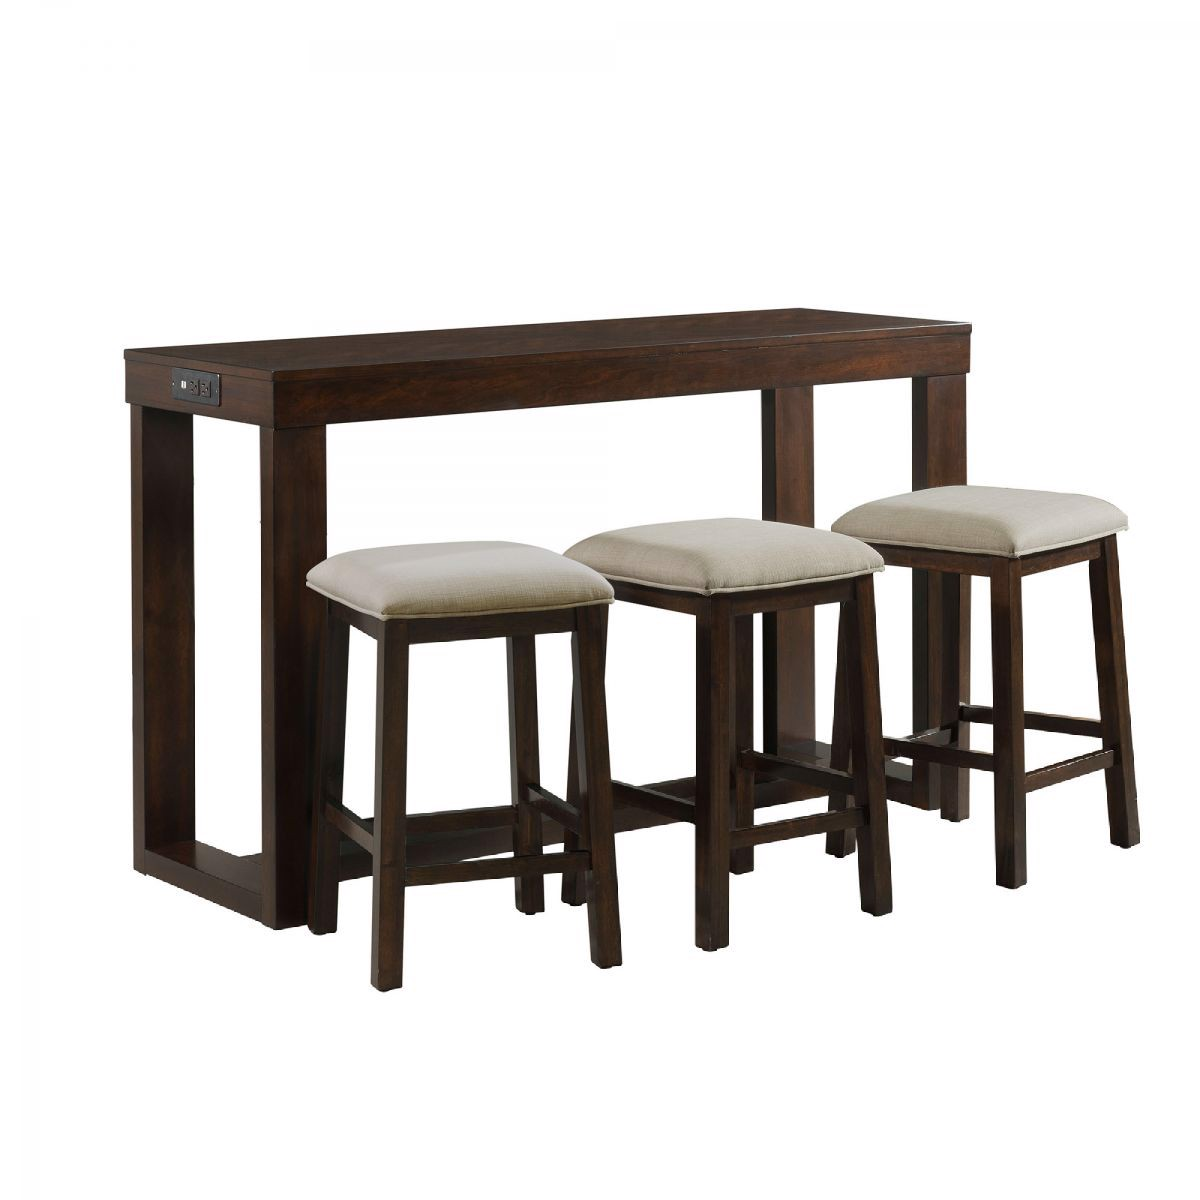 Picture of Hardy Bar Table & 3 Stools